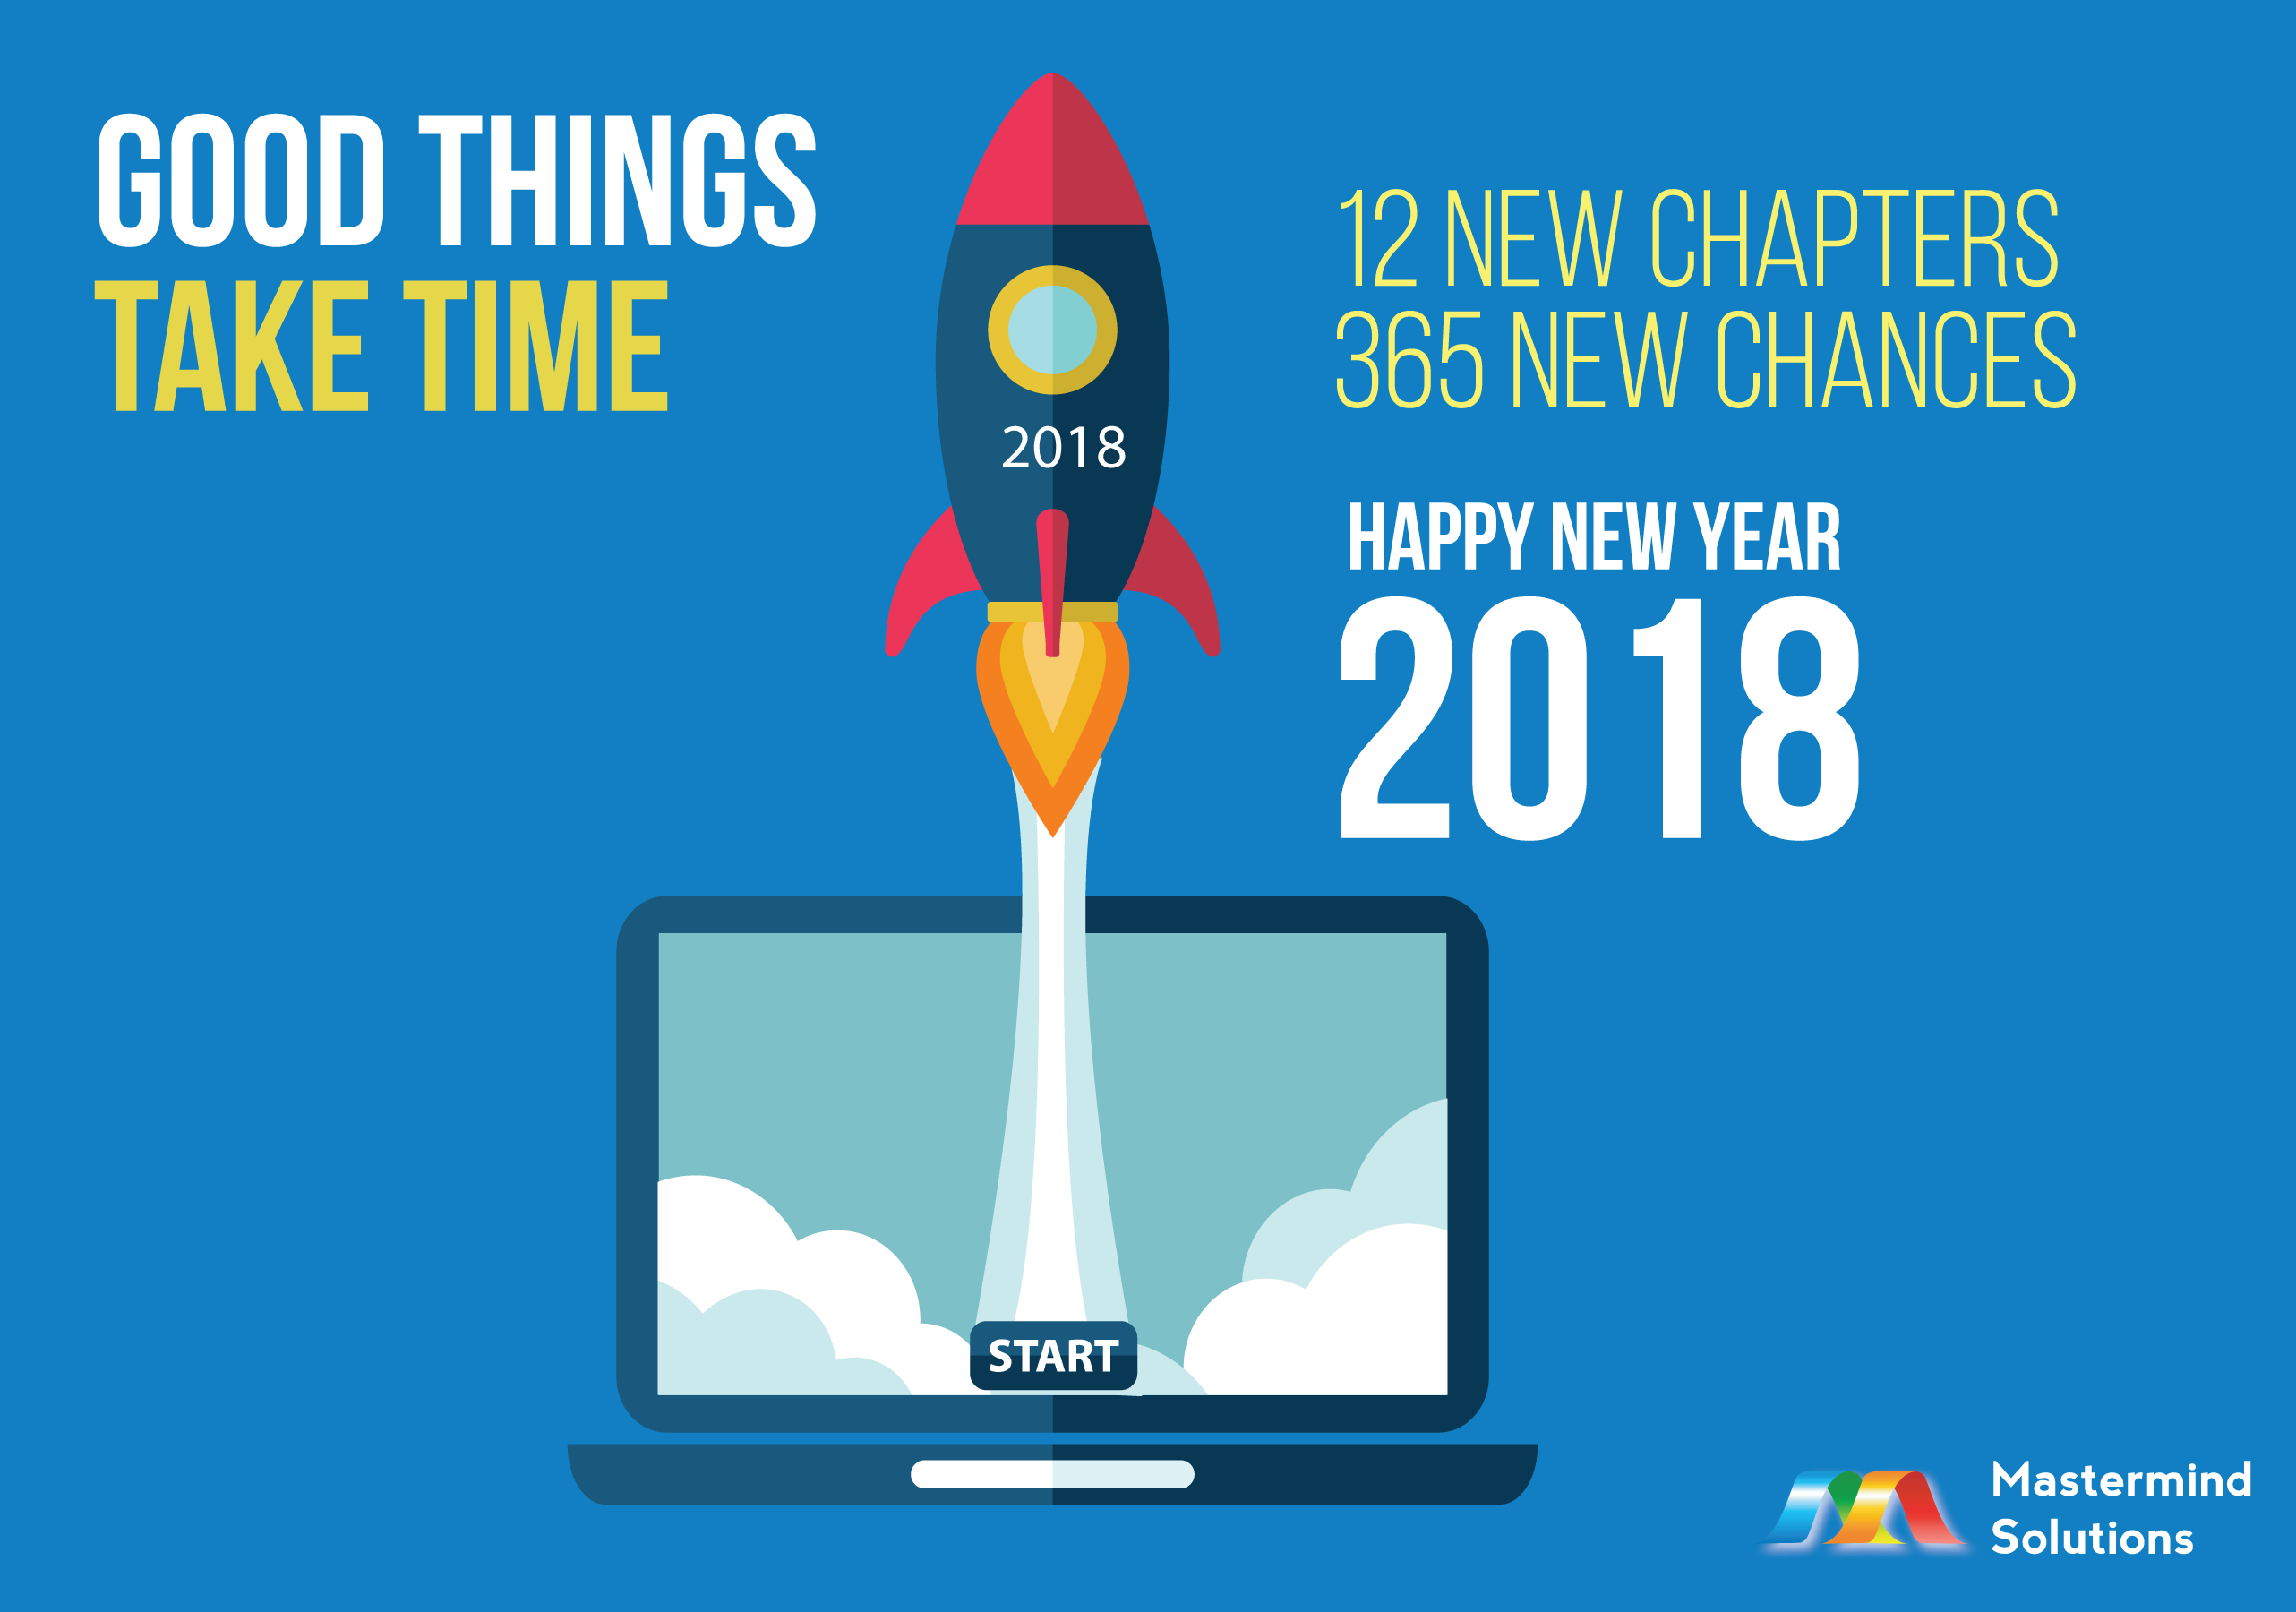 12 New Chapters, 365 New Chances, Happy New Year 2018.